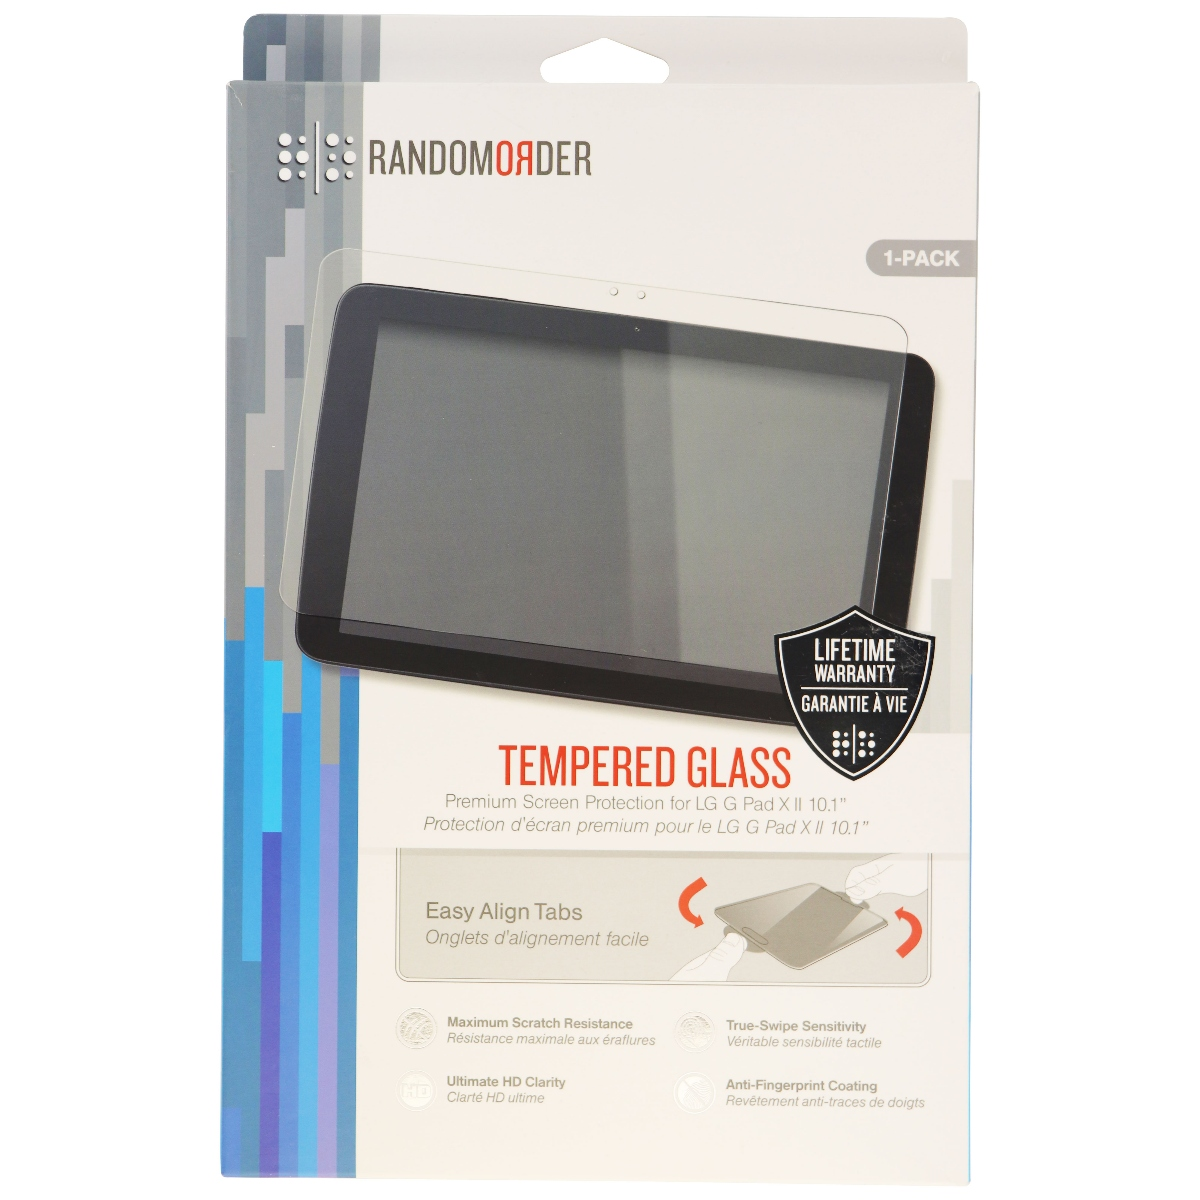 Random Order Tempered Glass Screen Protector for LG G Pad 2 10.1